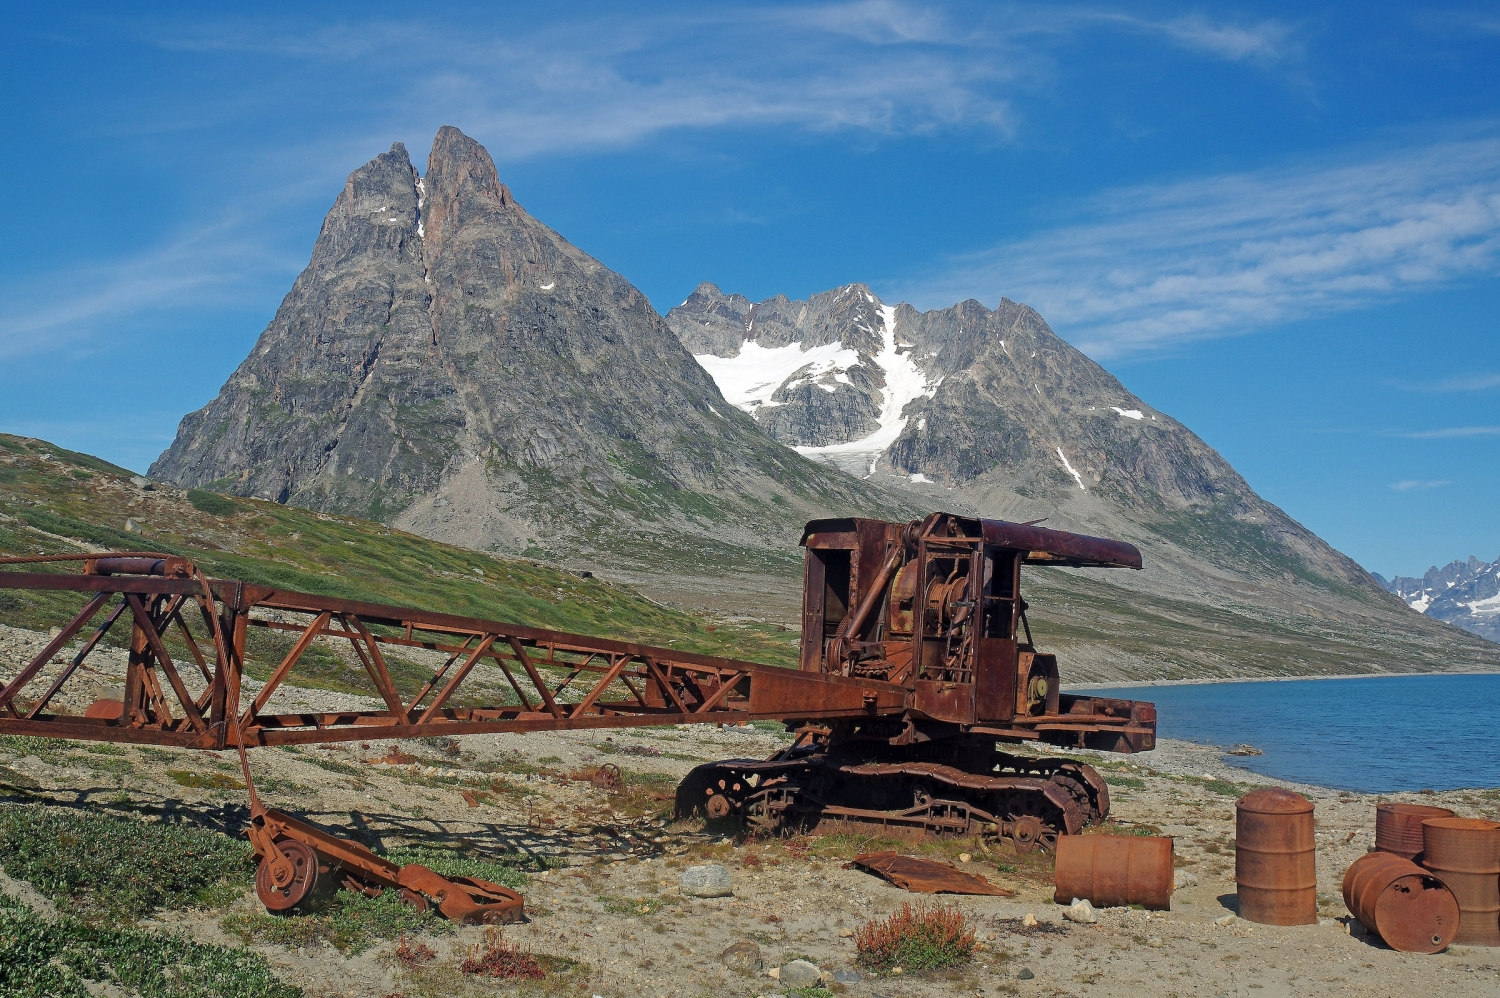 Rusted vehicle at remains of American WW2 base Bluie East Two at Ikateq, East Greenland. Photo by Reinhard Pantke - Visit Greenland